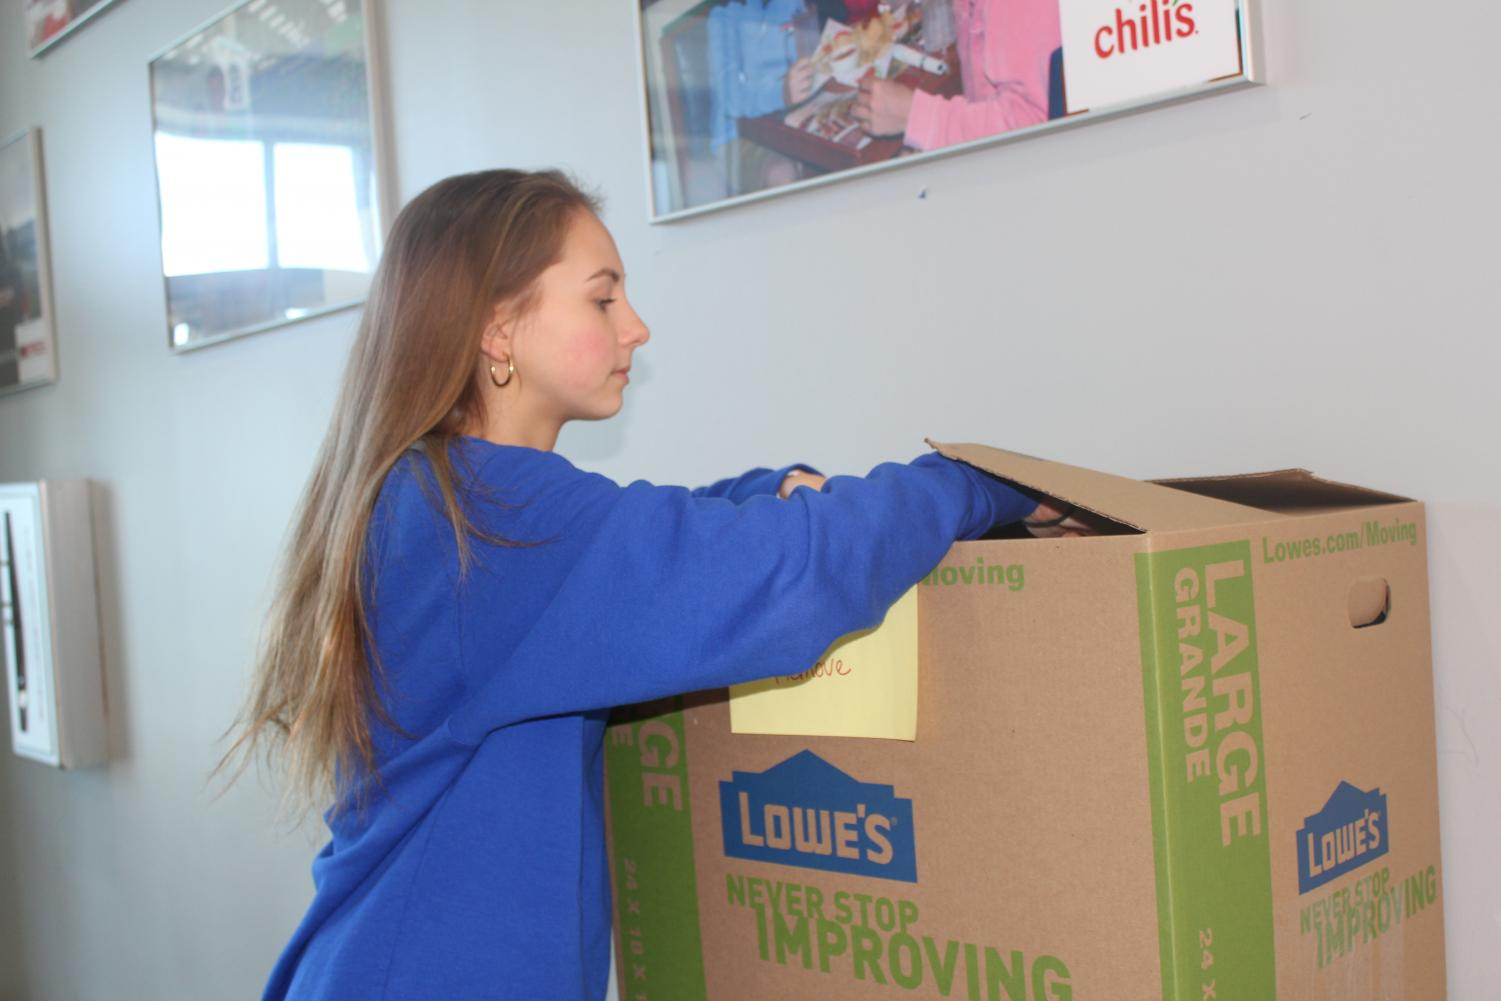 Erin Oliver, 12, adds a donation to the box for seniors.  The school is collecting hats, gloves, and socks for the Catholic Action Center who will distribute them to those in need.